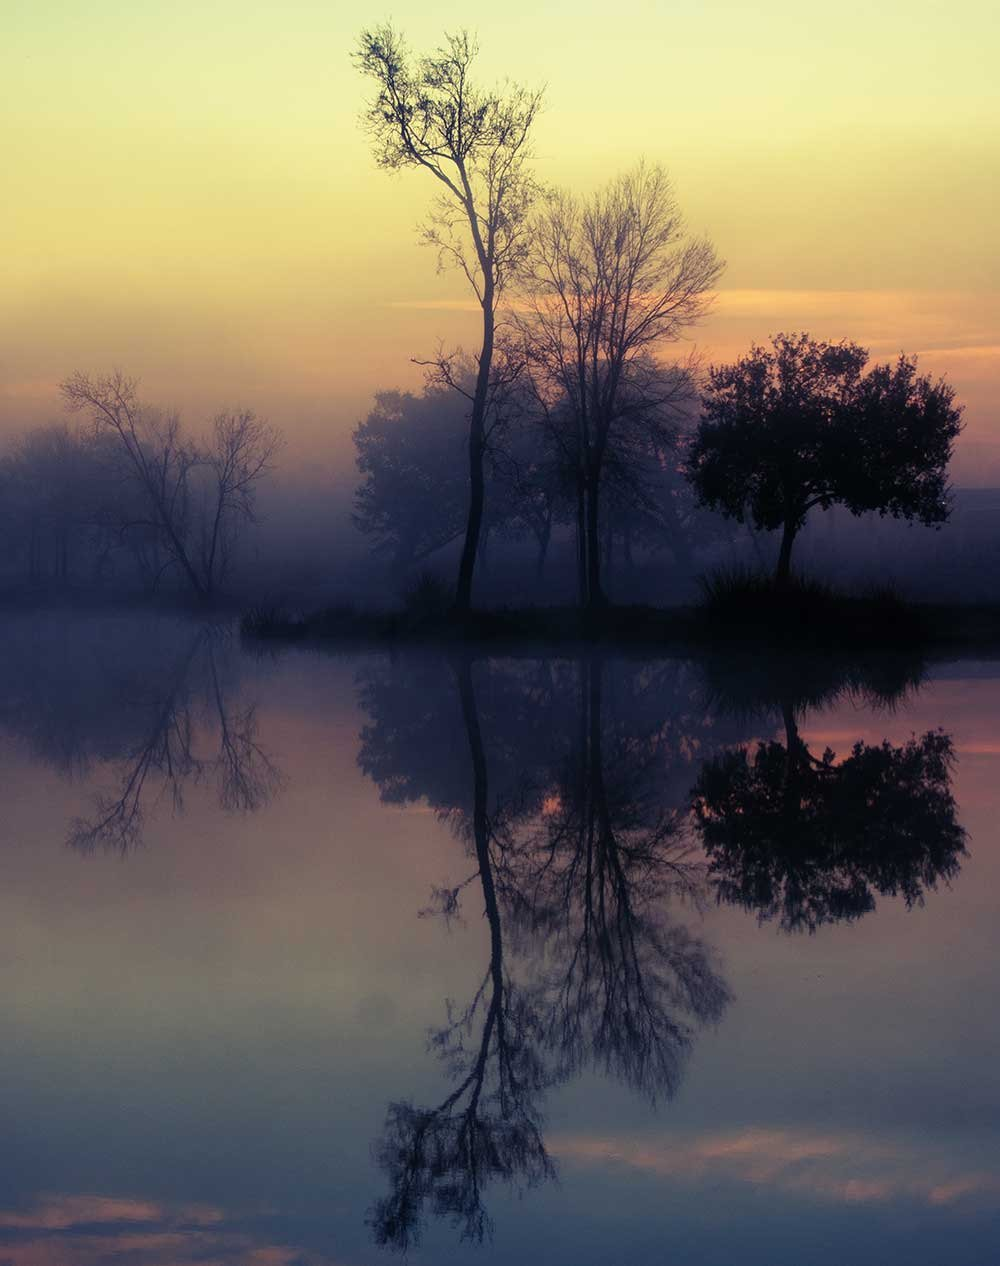 Foggy Lake Sunrise, Nature Photography Lost Kat Photography